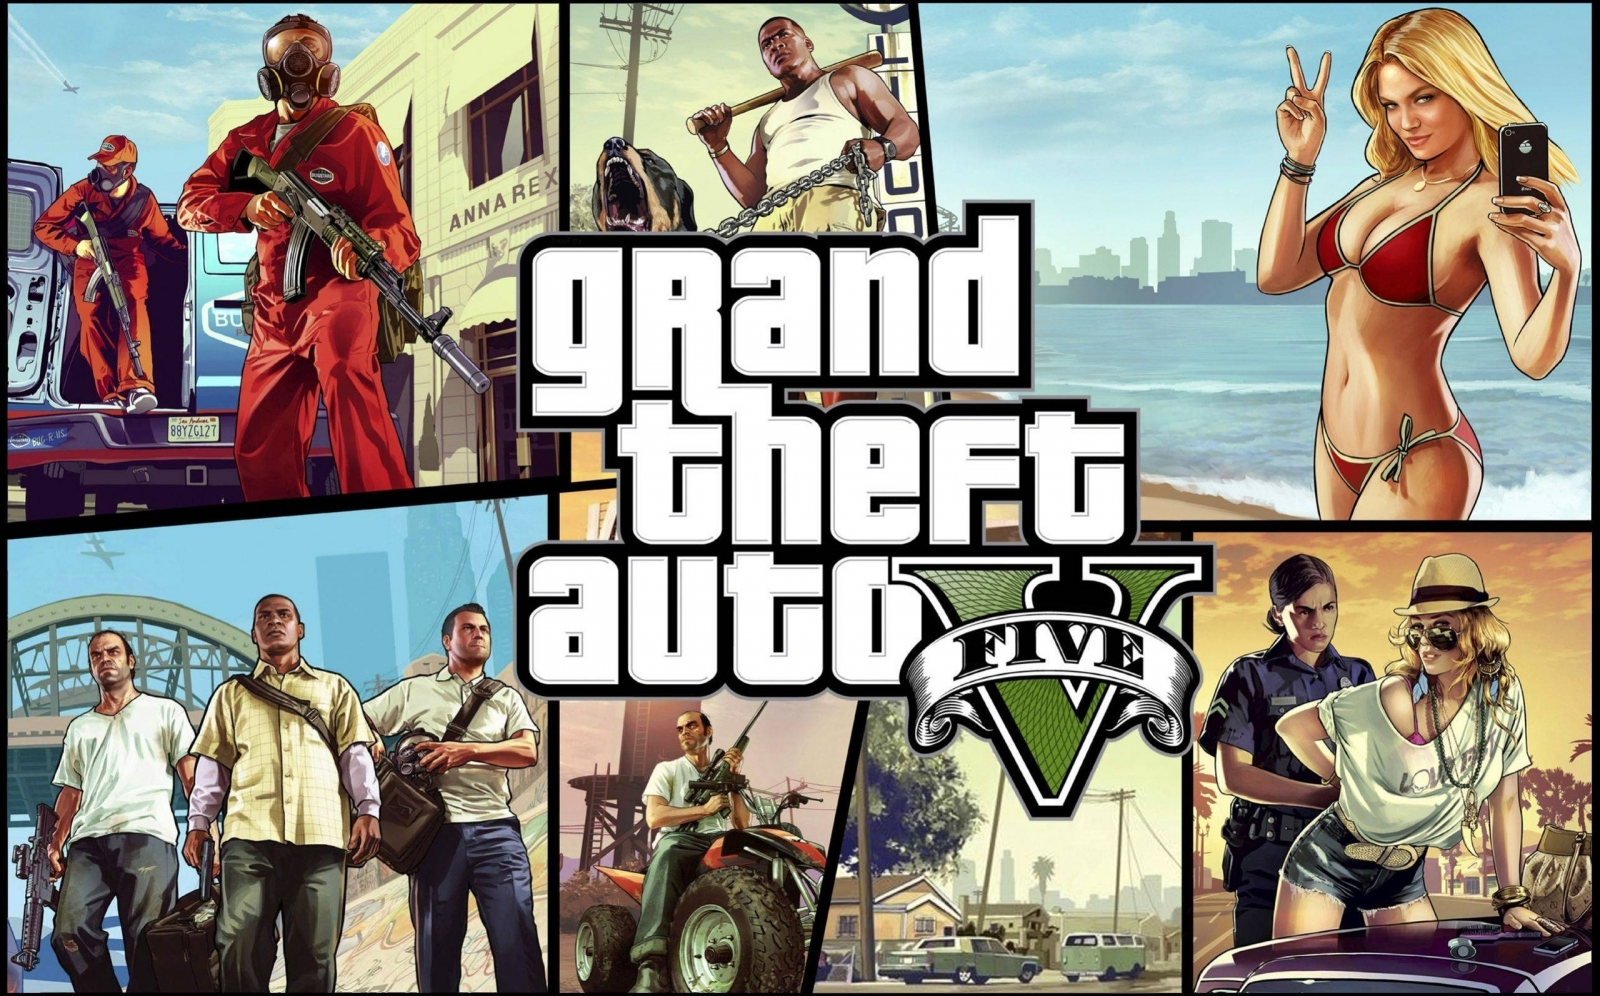 GTA 5 Online Next-Gen: New Free DLC and Heists Update with Patch 1.18 Coming Soon